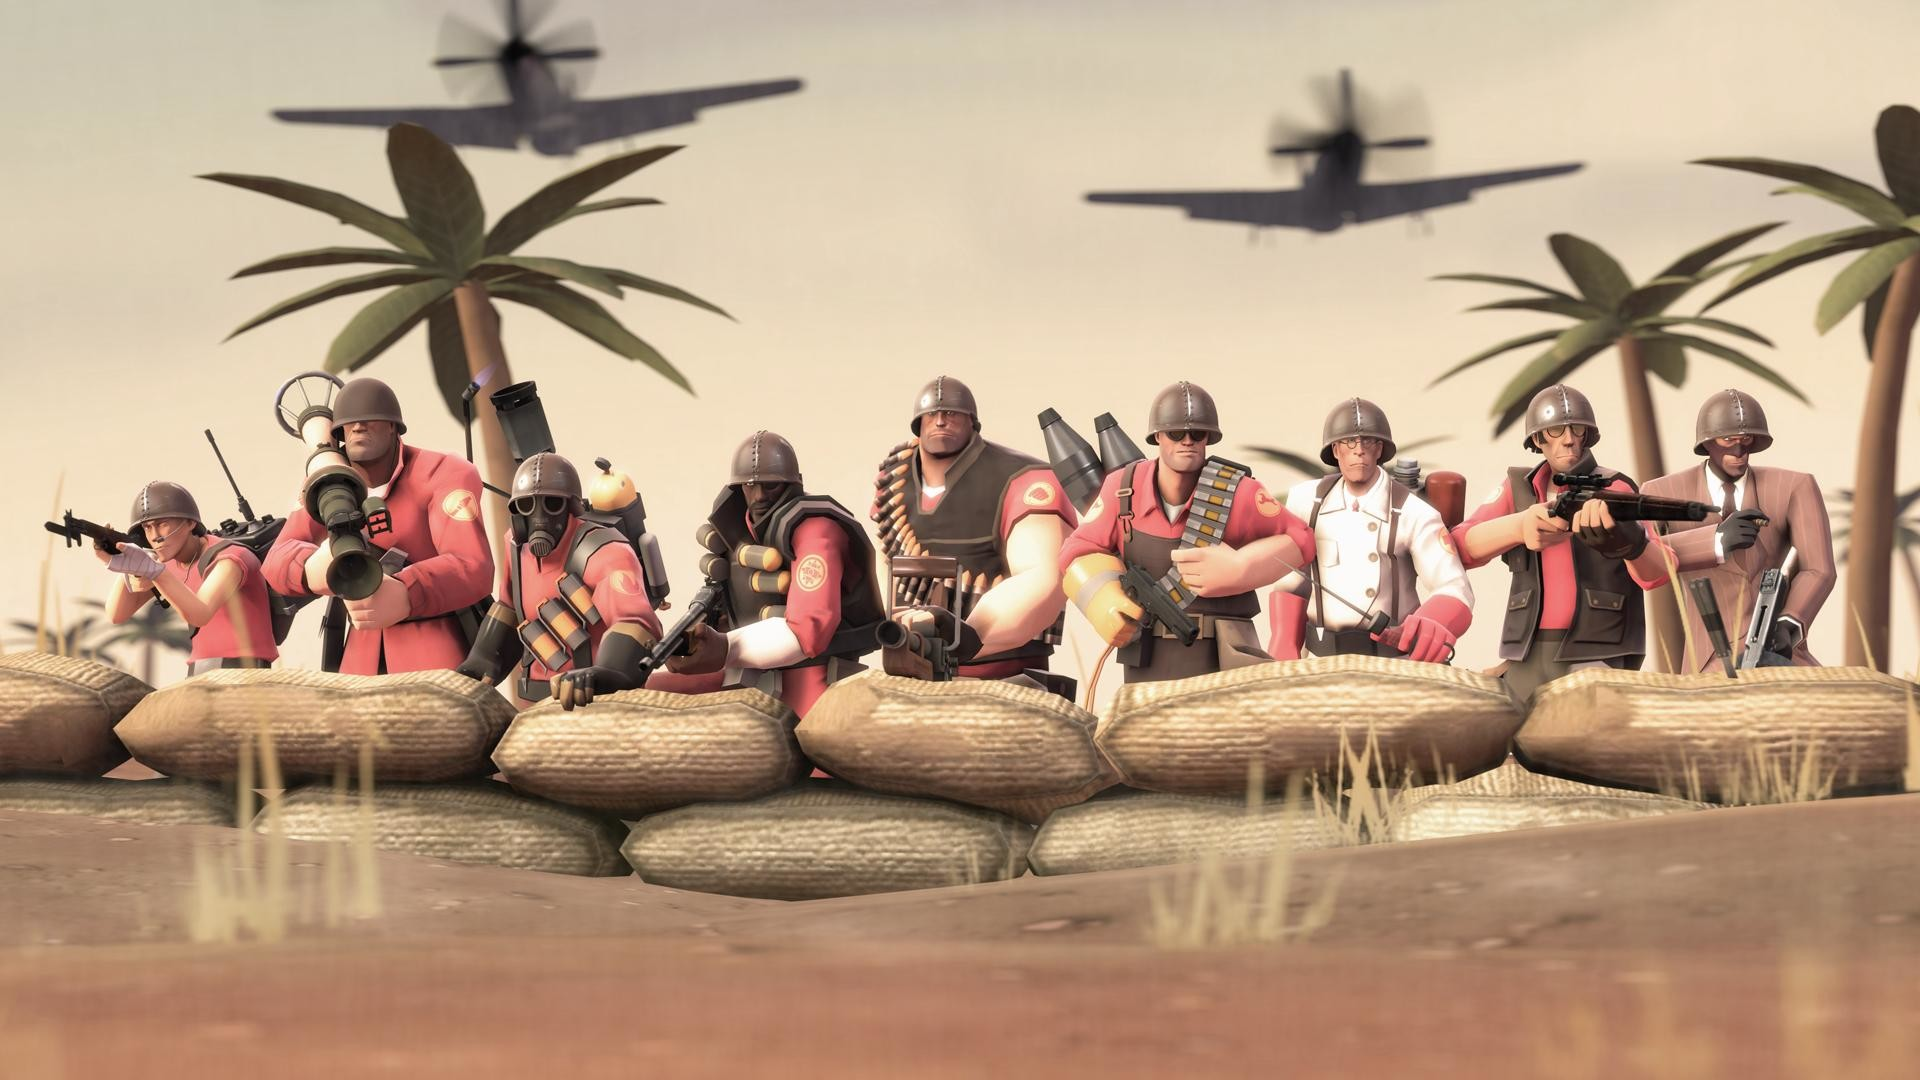 Free-Team-Fortress-2-Wallpapers-Free-Download